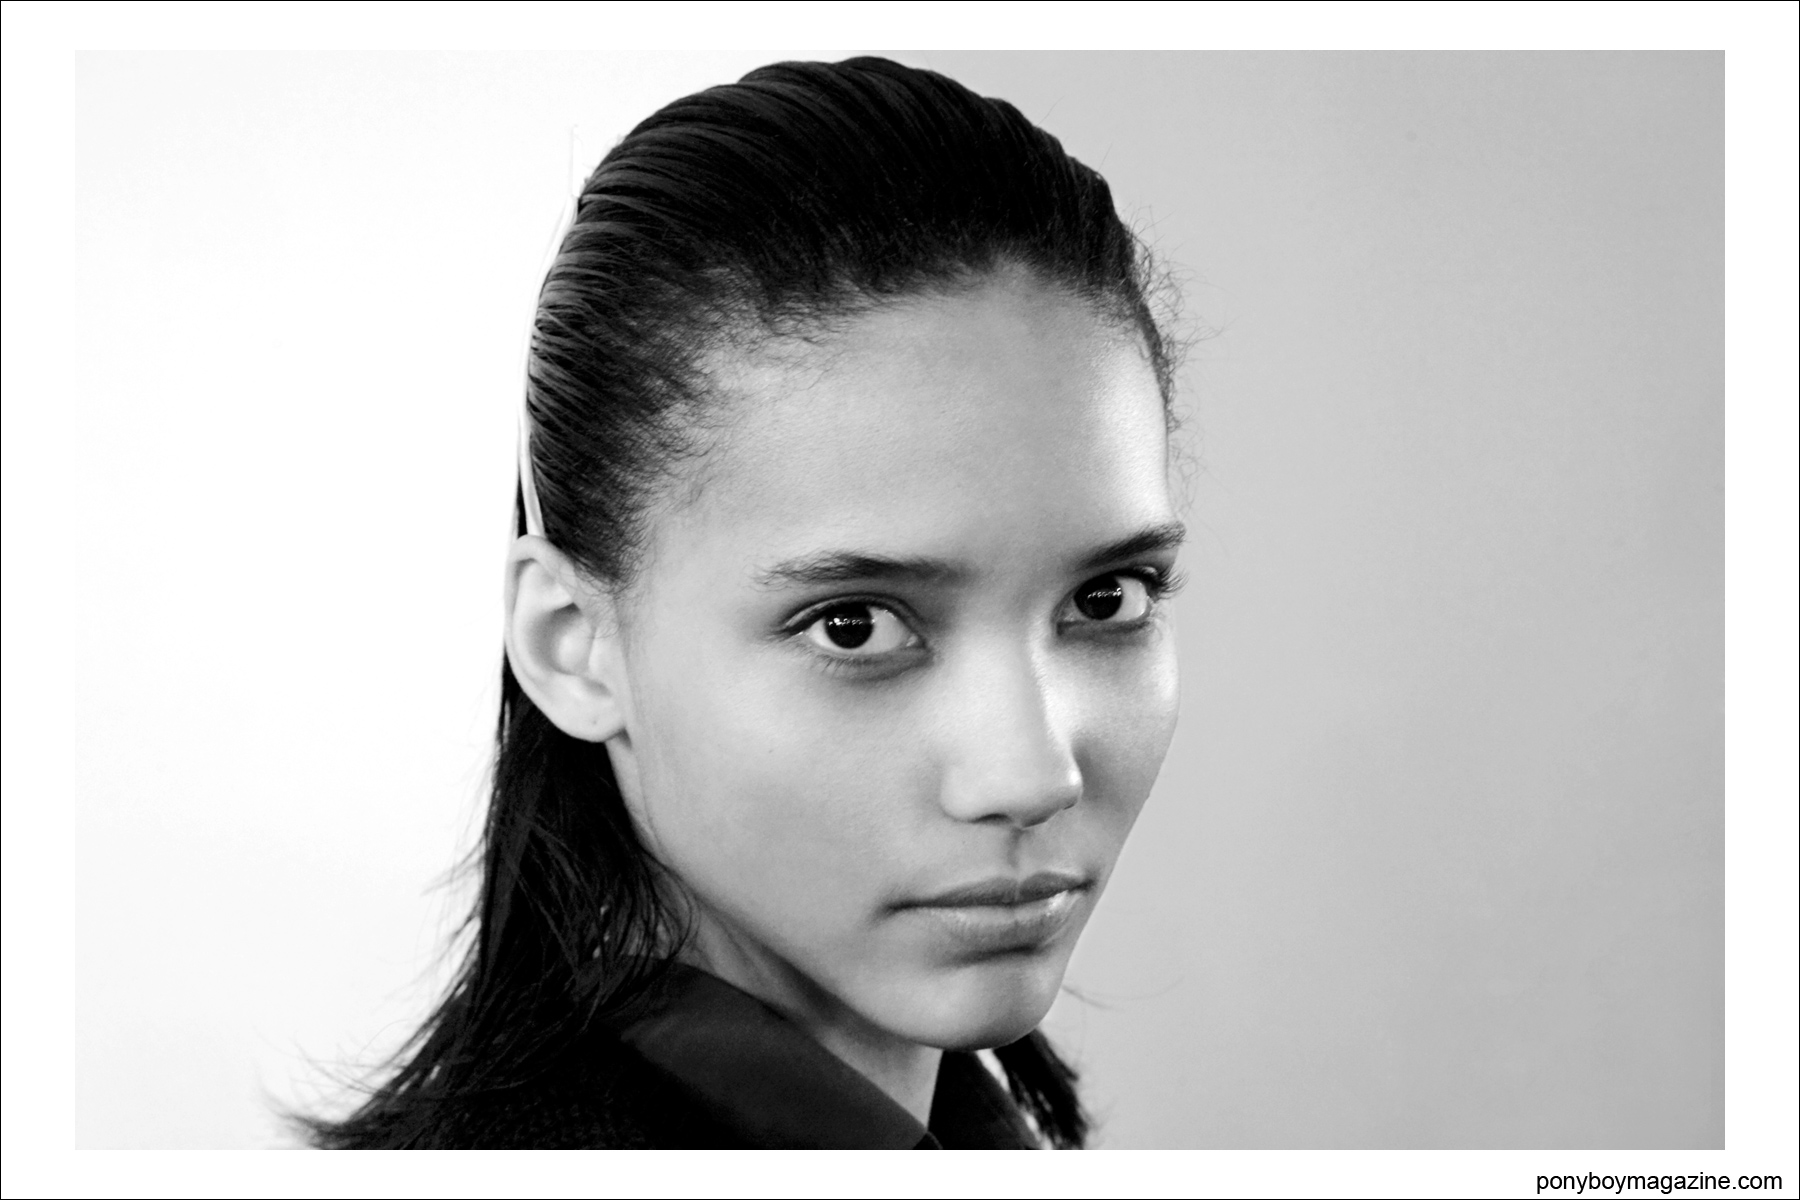 A b&w portrait of a model while getting hair and makeup done at the Jeremy Scott A/W fashion show